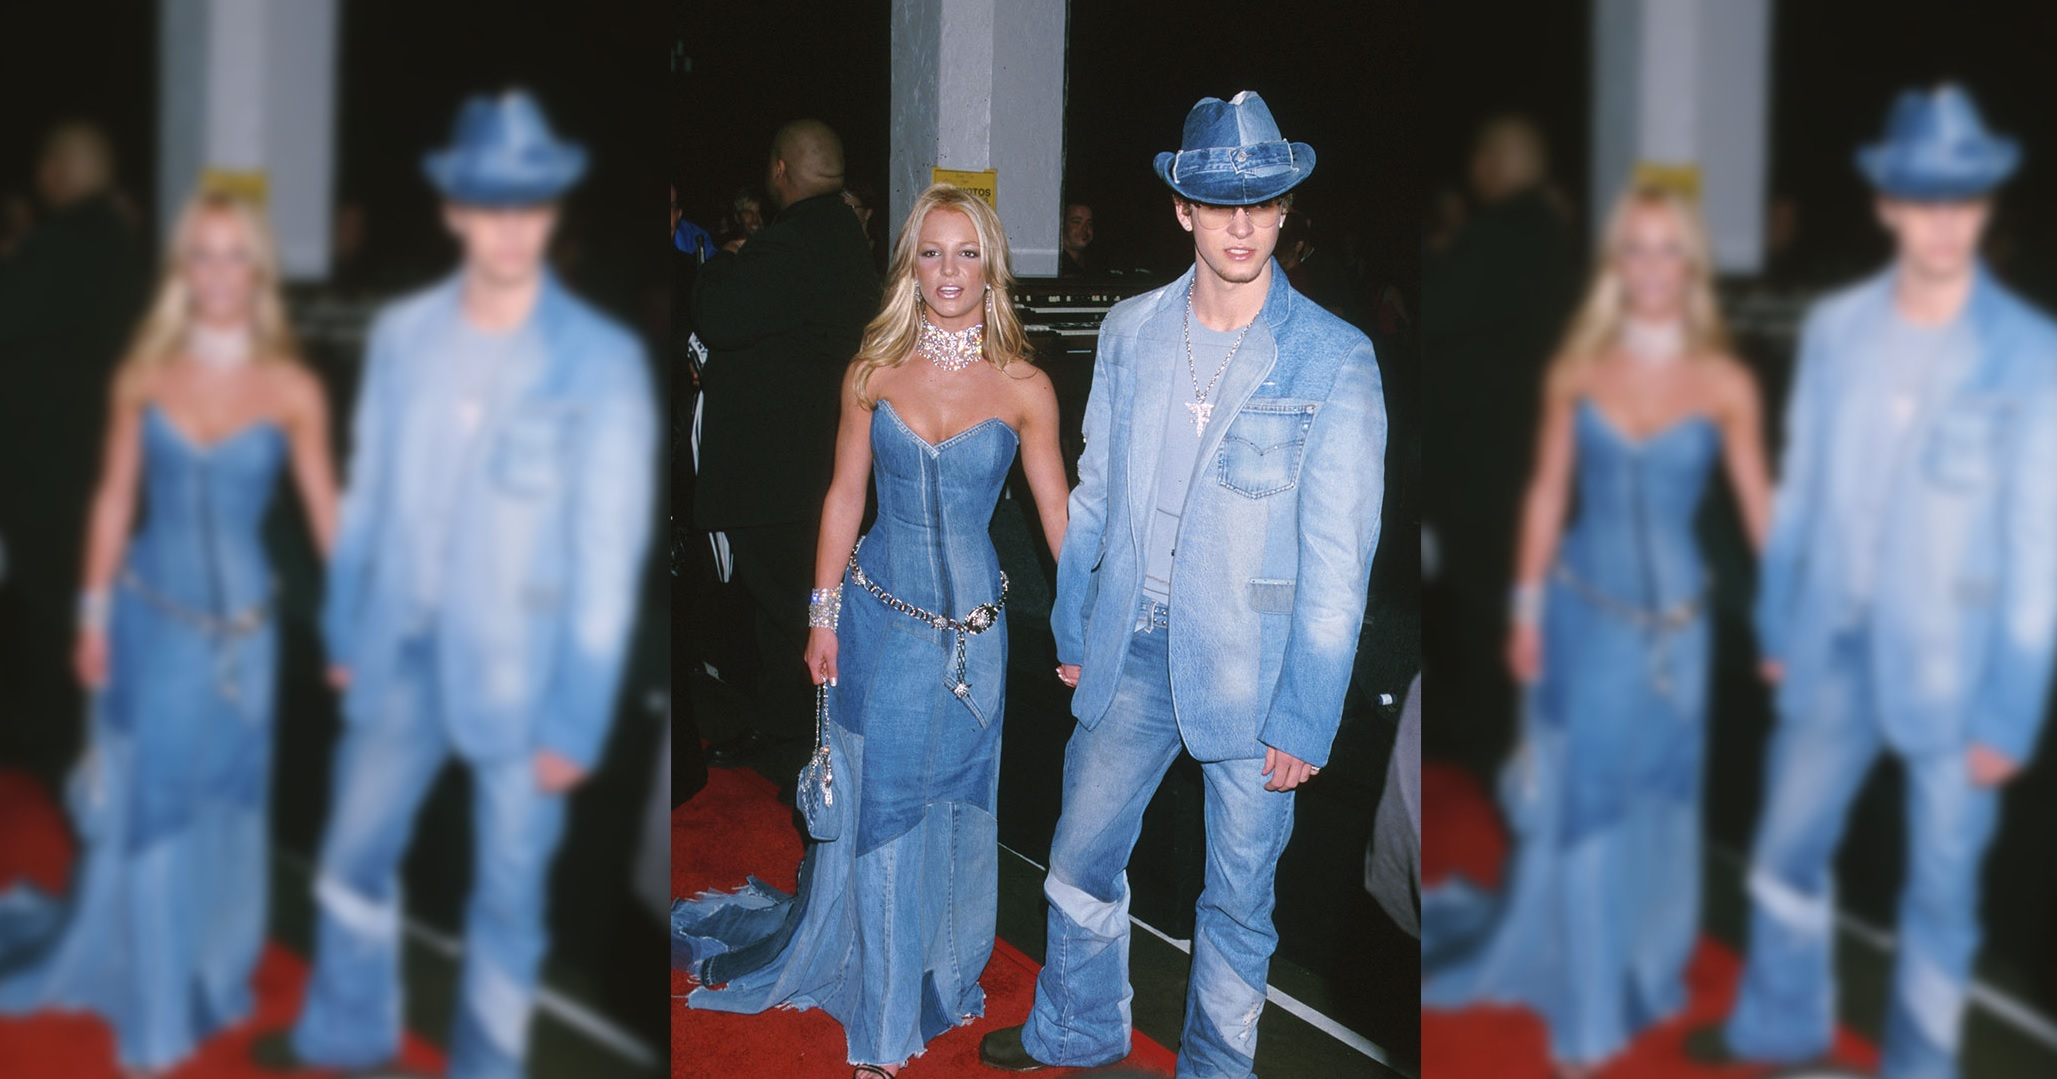 The Biggest Fashion Disasters Of Award Shows